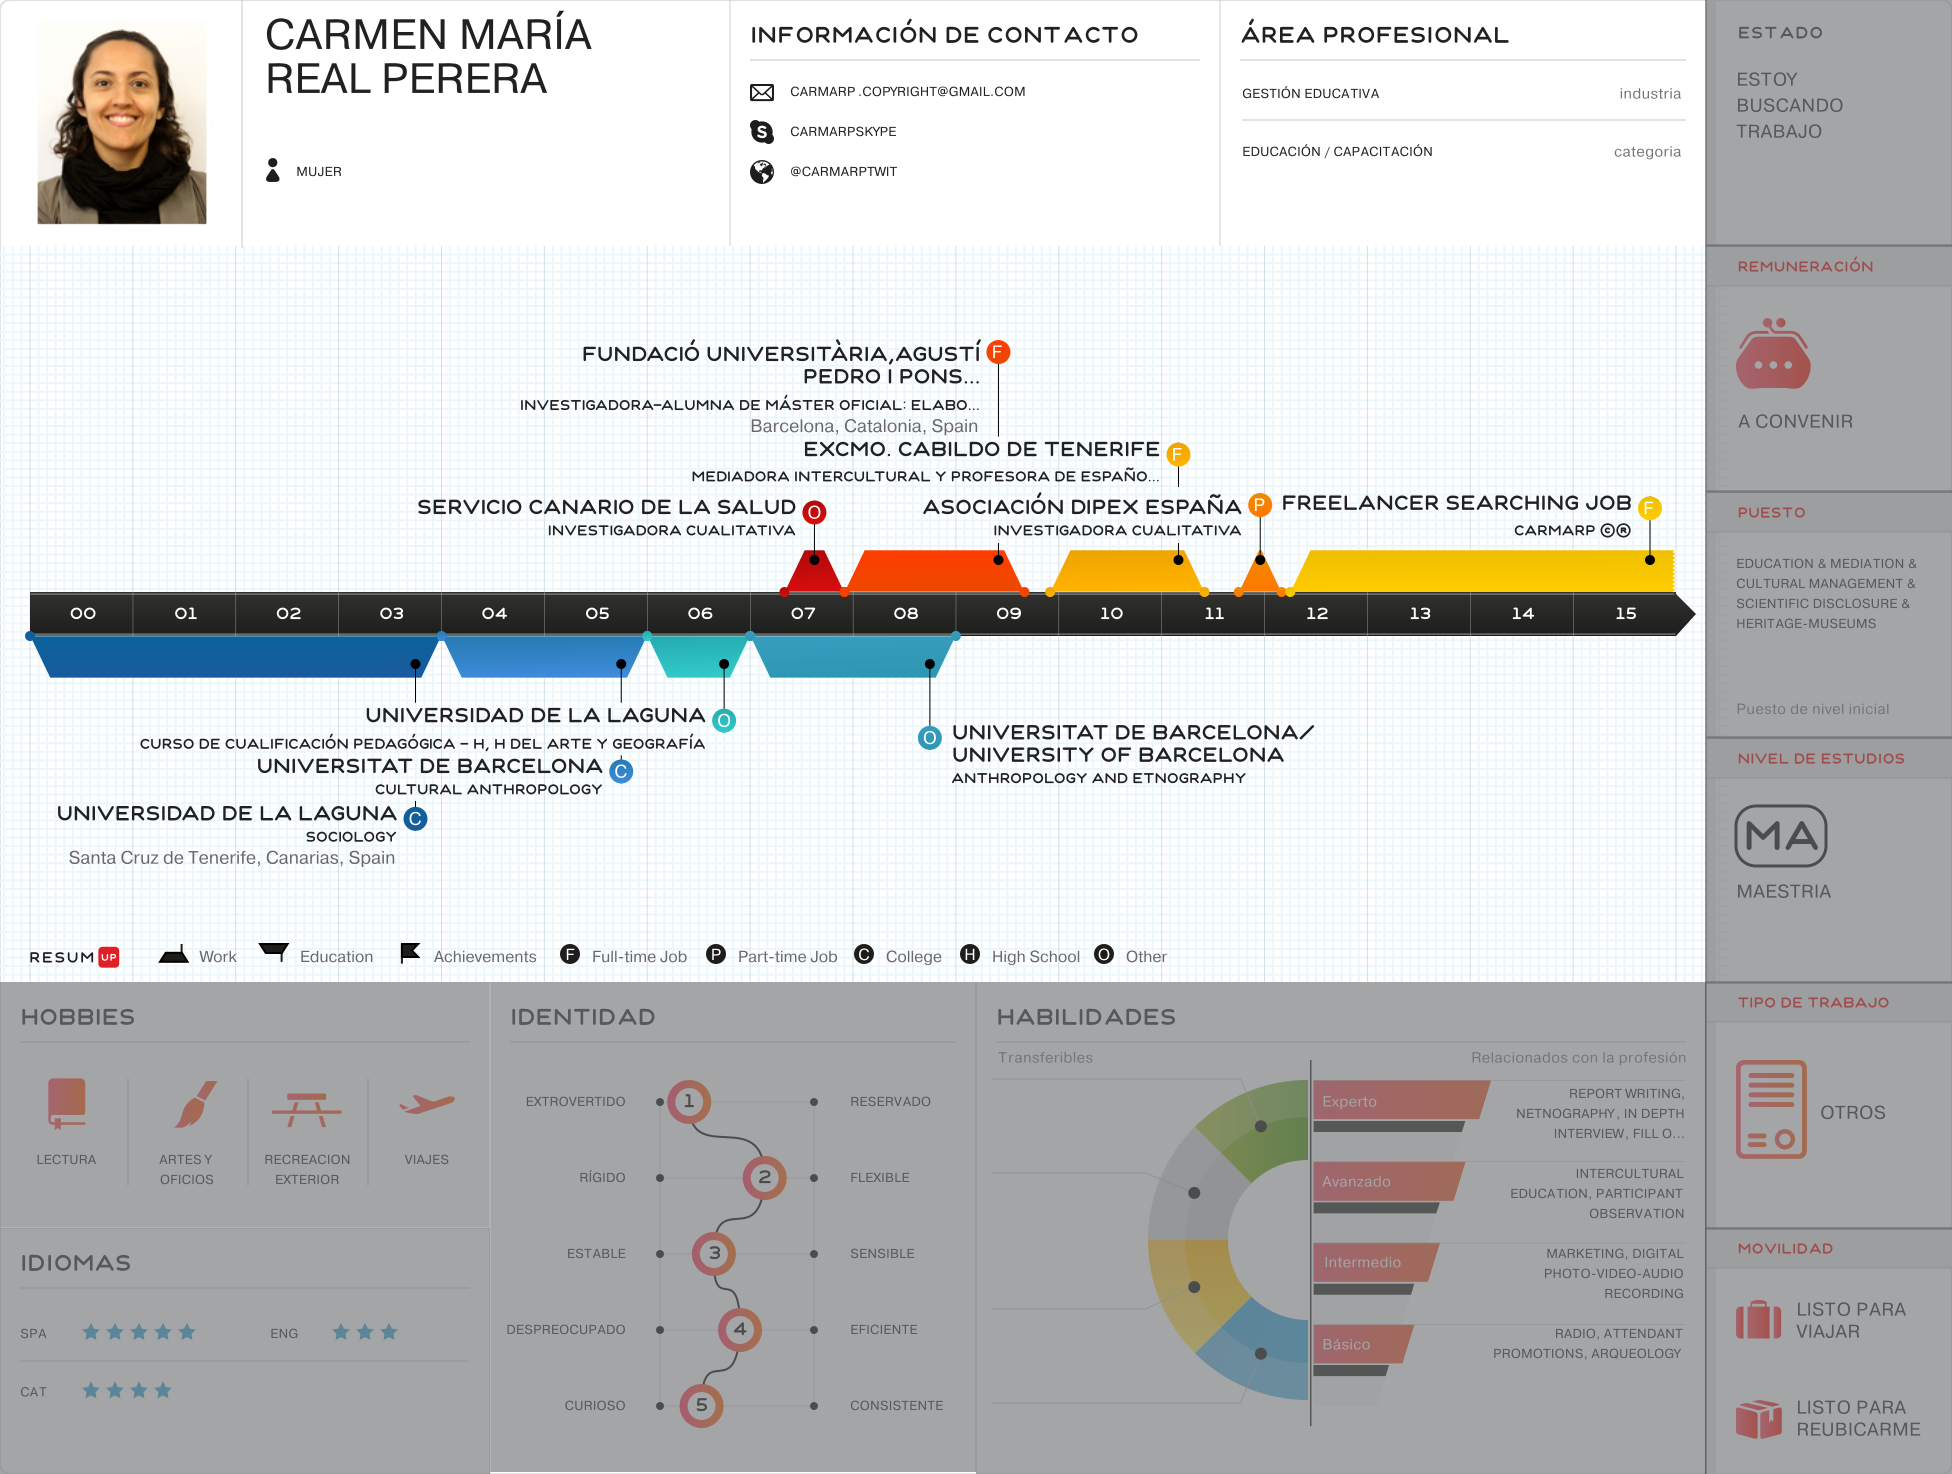 CARMEN MARÍA REAL PERERA - Visual Infographic resume